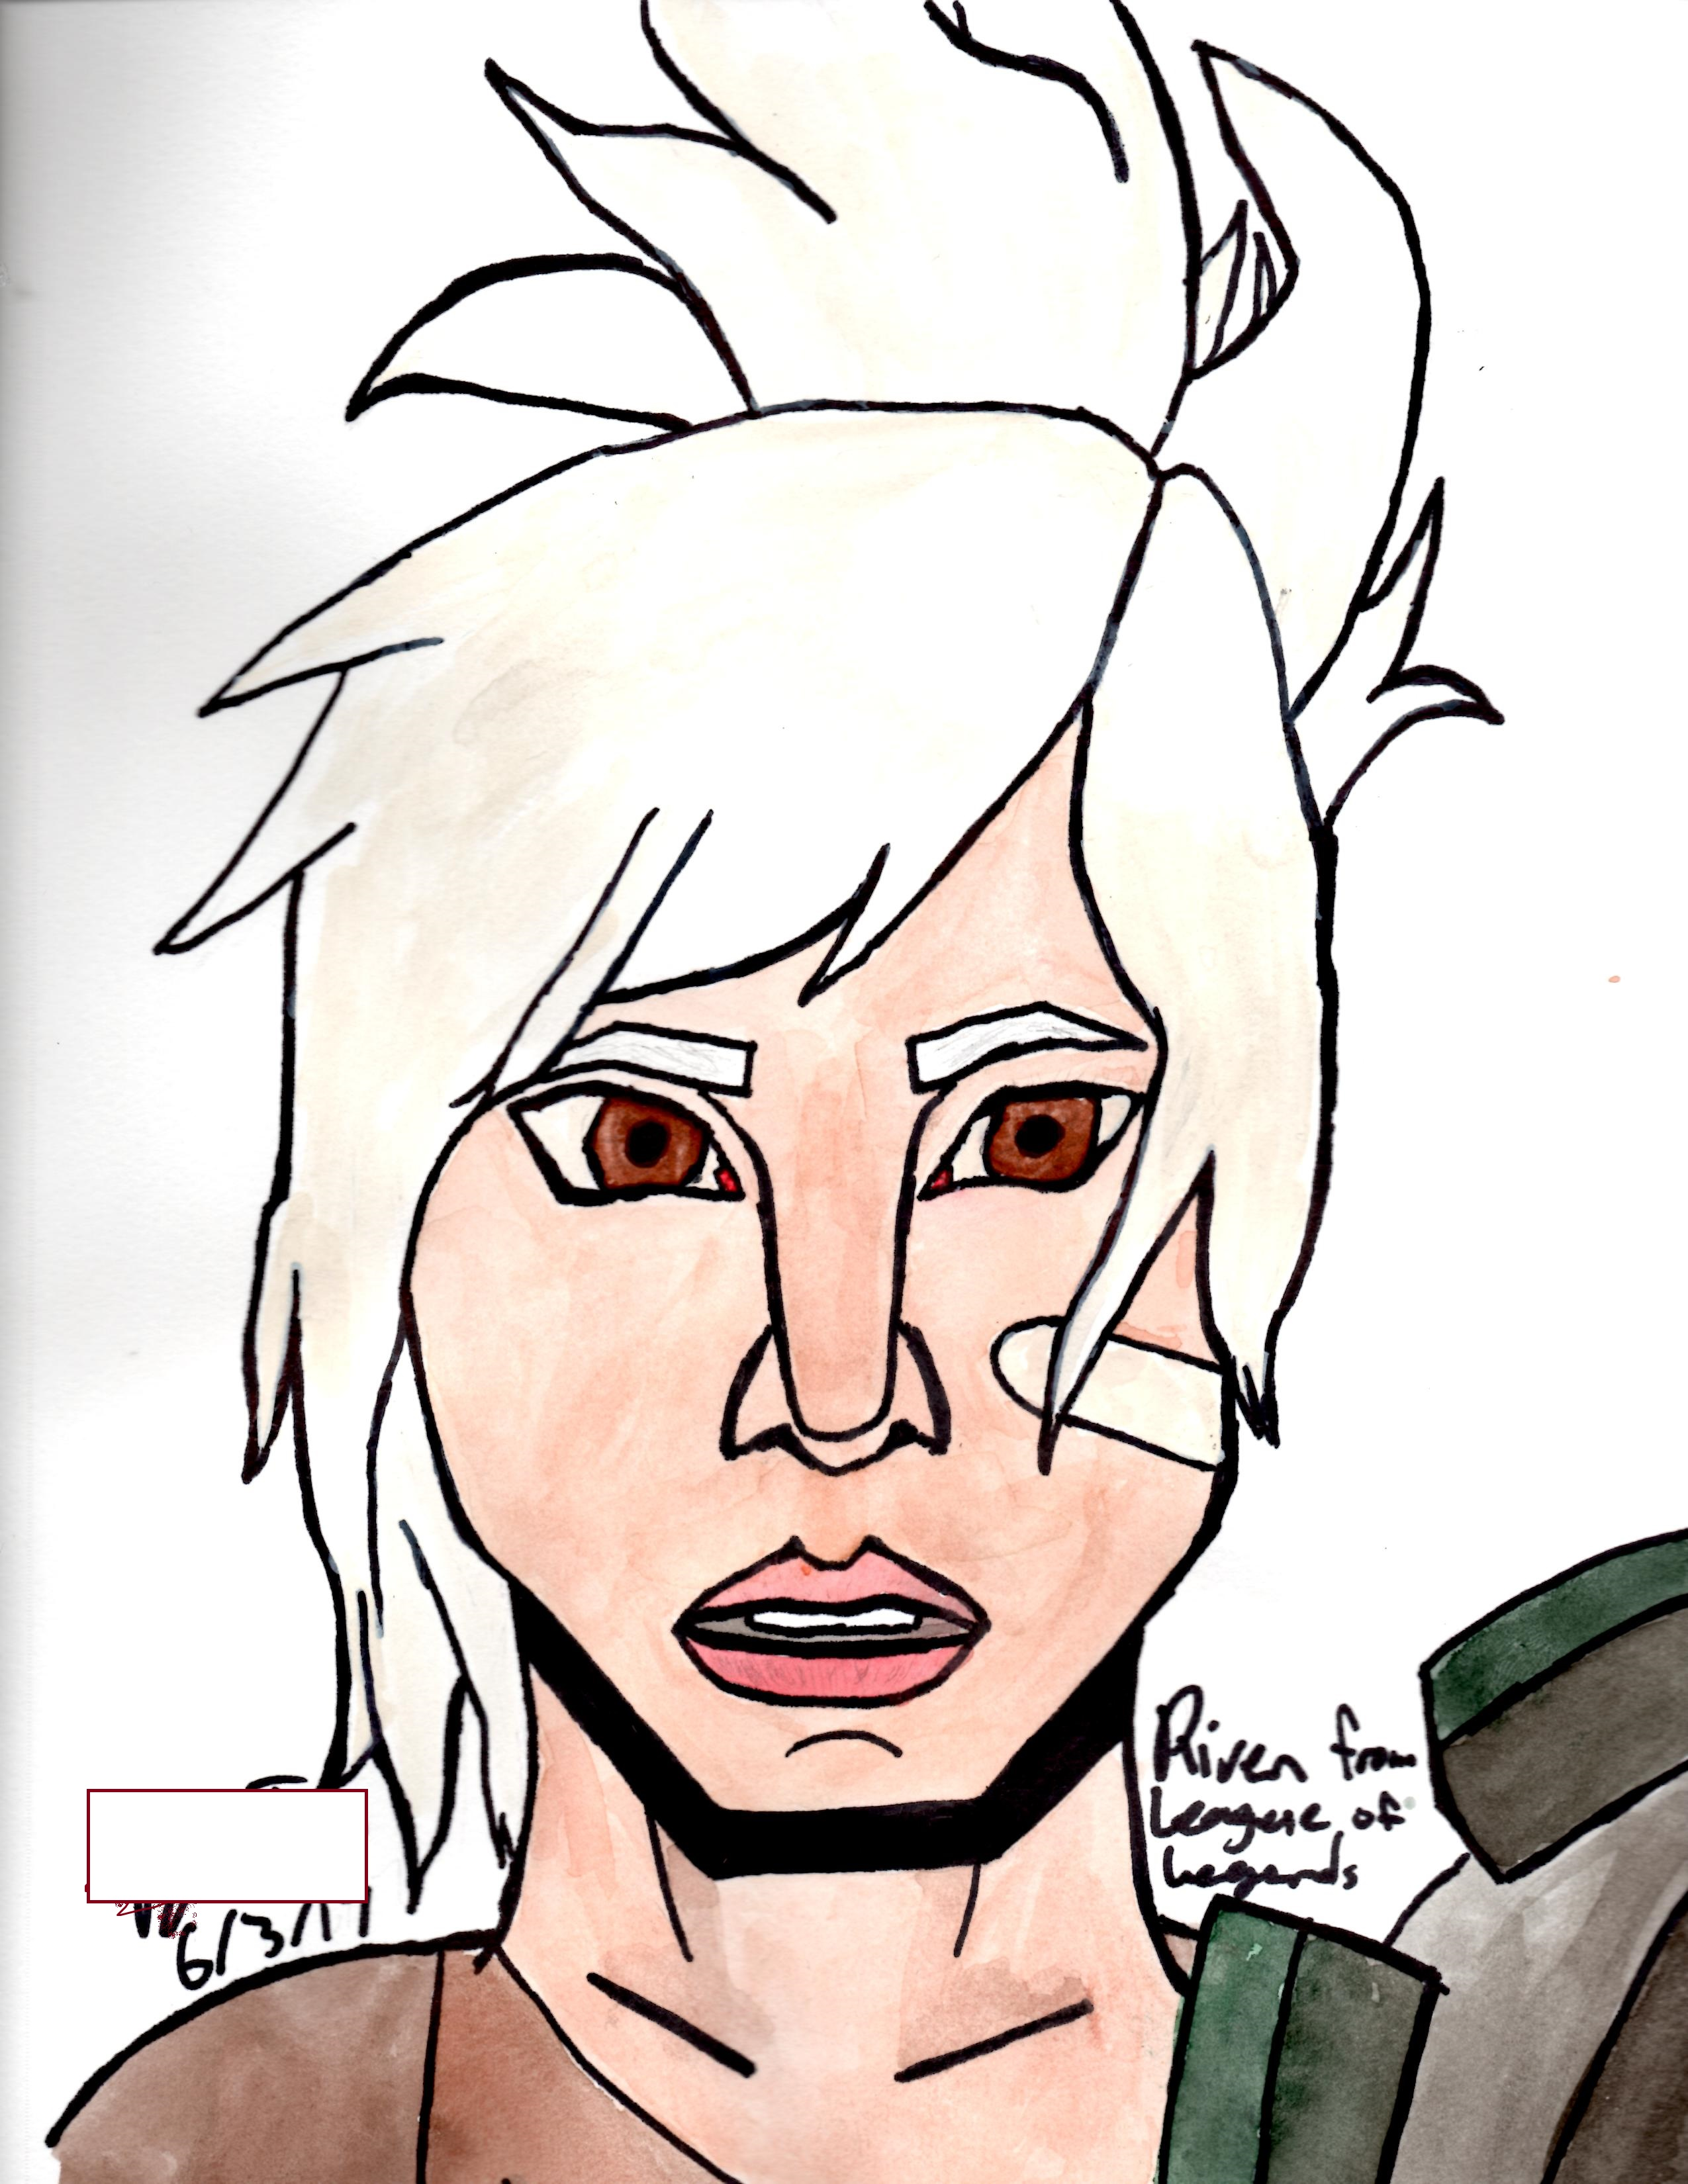 Riven_Drawing